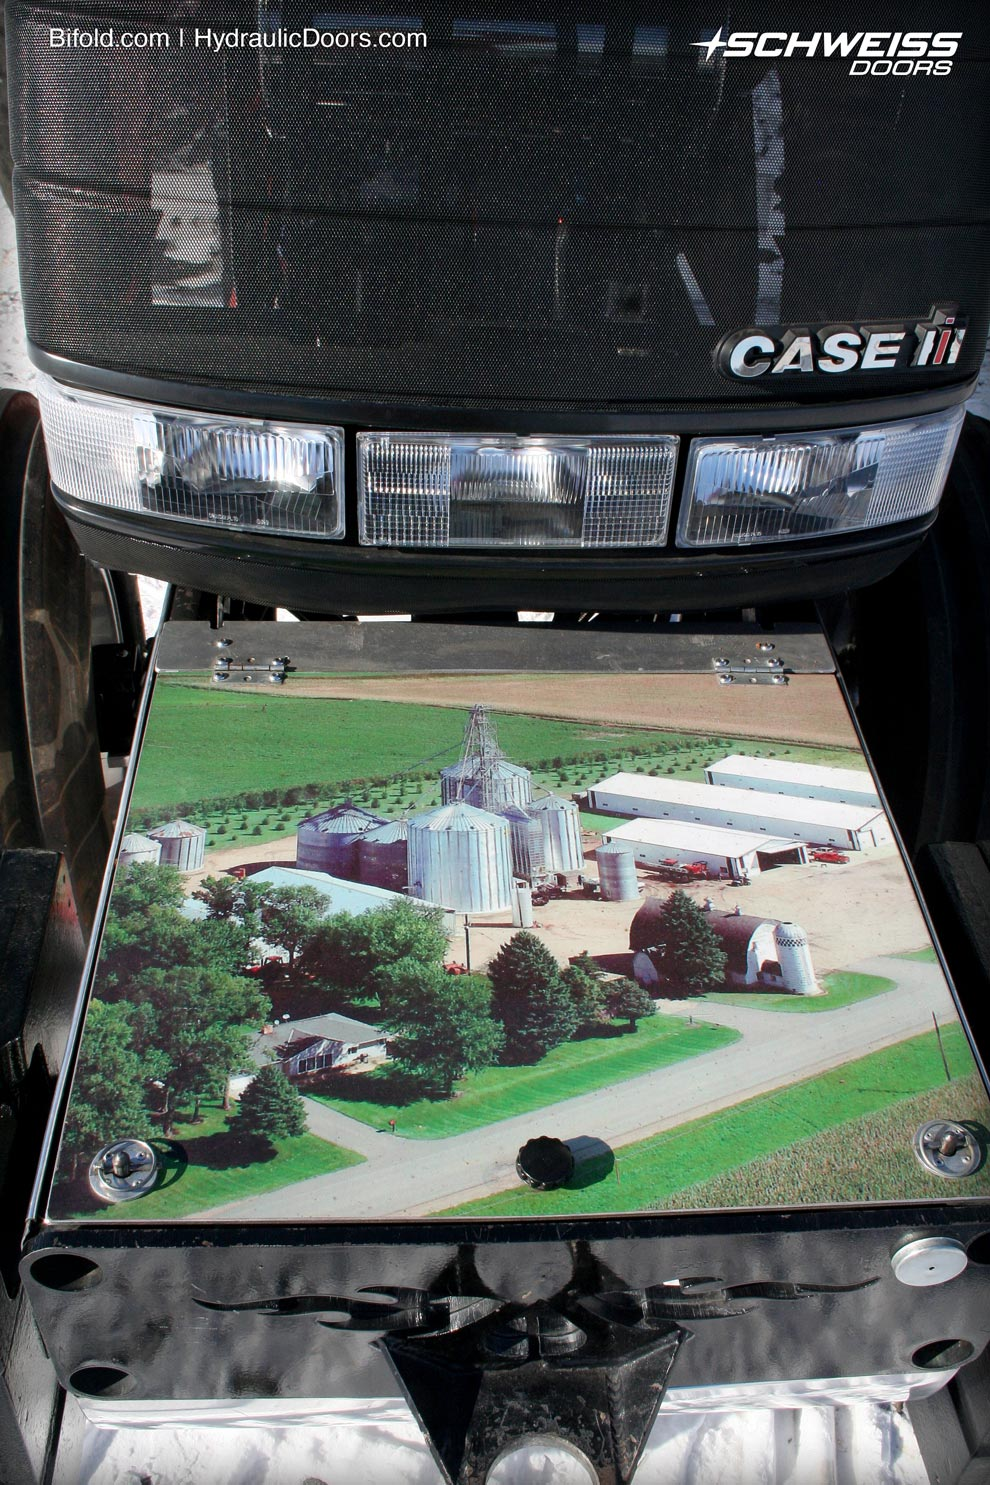 Atwater farm picture displayed on front of weight box